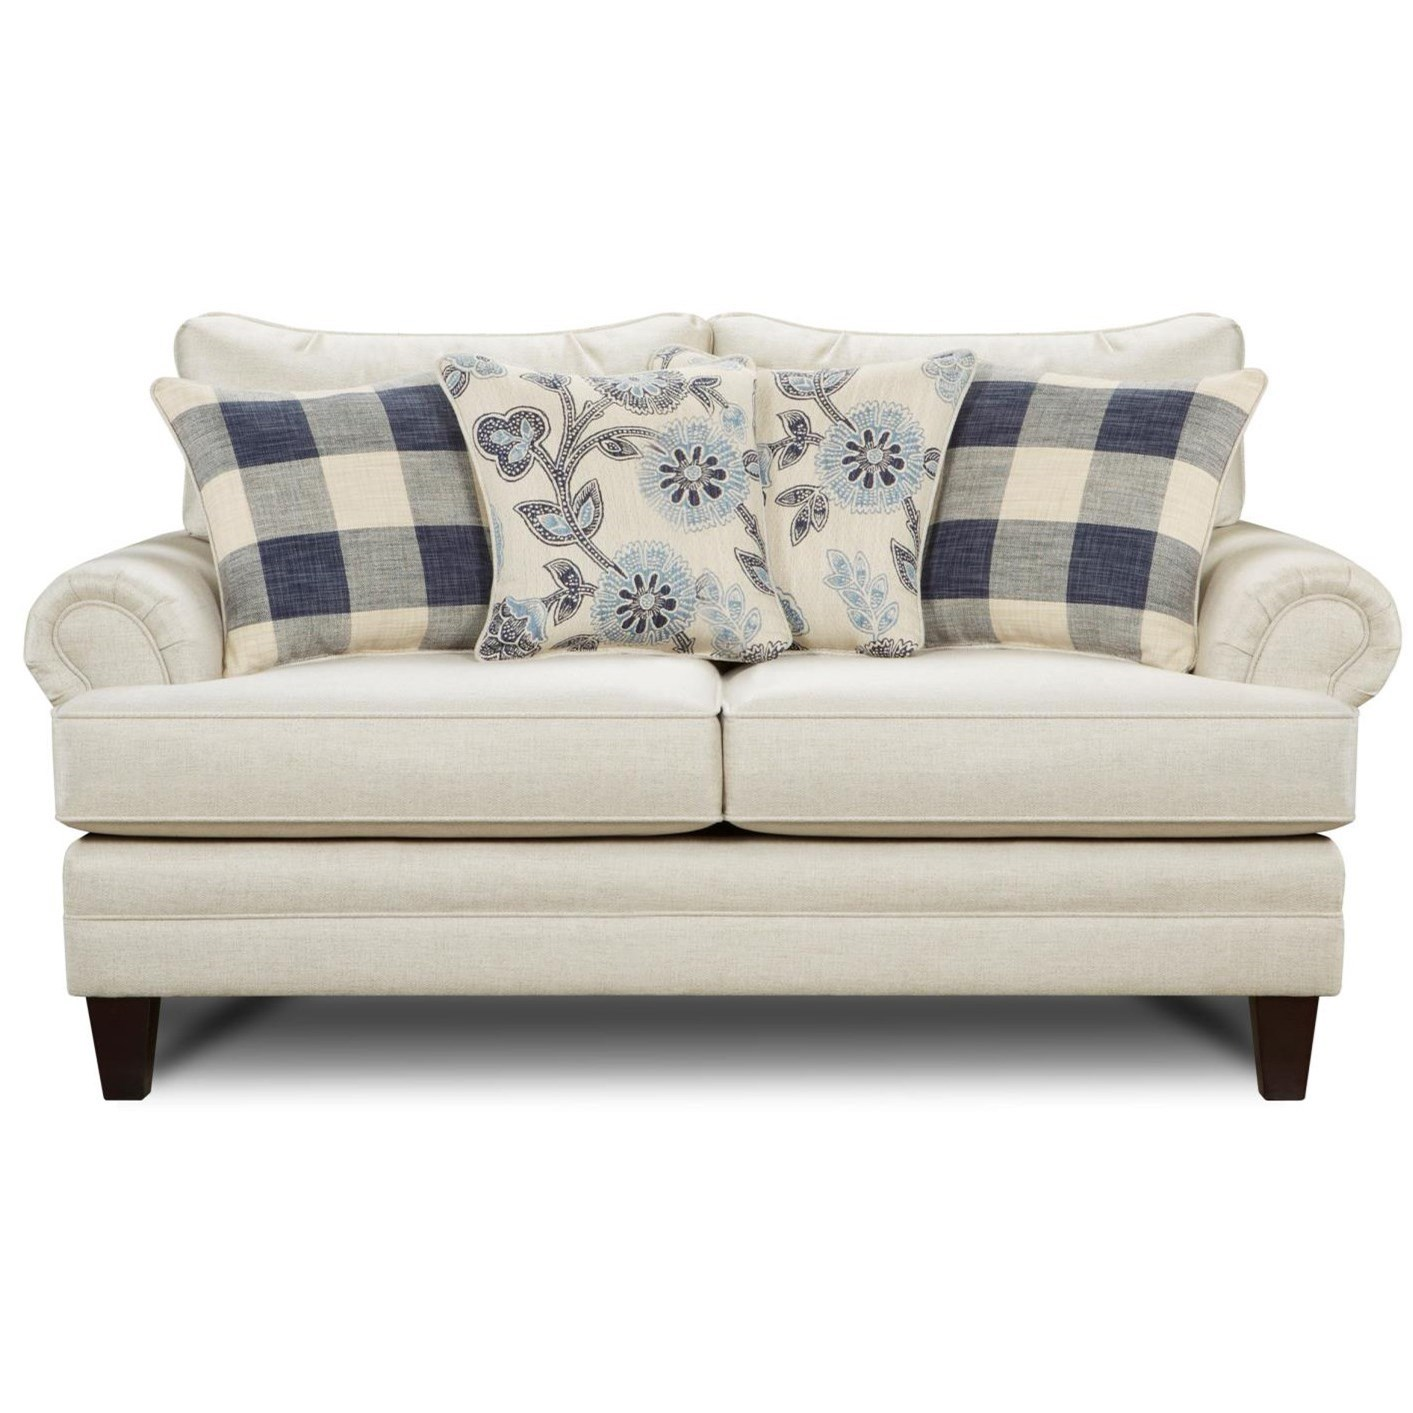 2810 Transitional Loveseat by Fusion Furniture at Wilson's Furniture